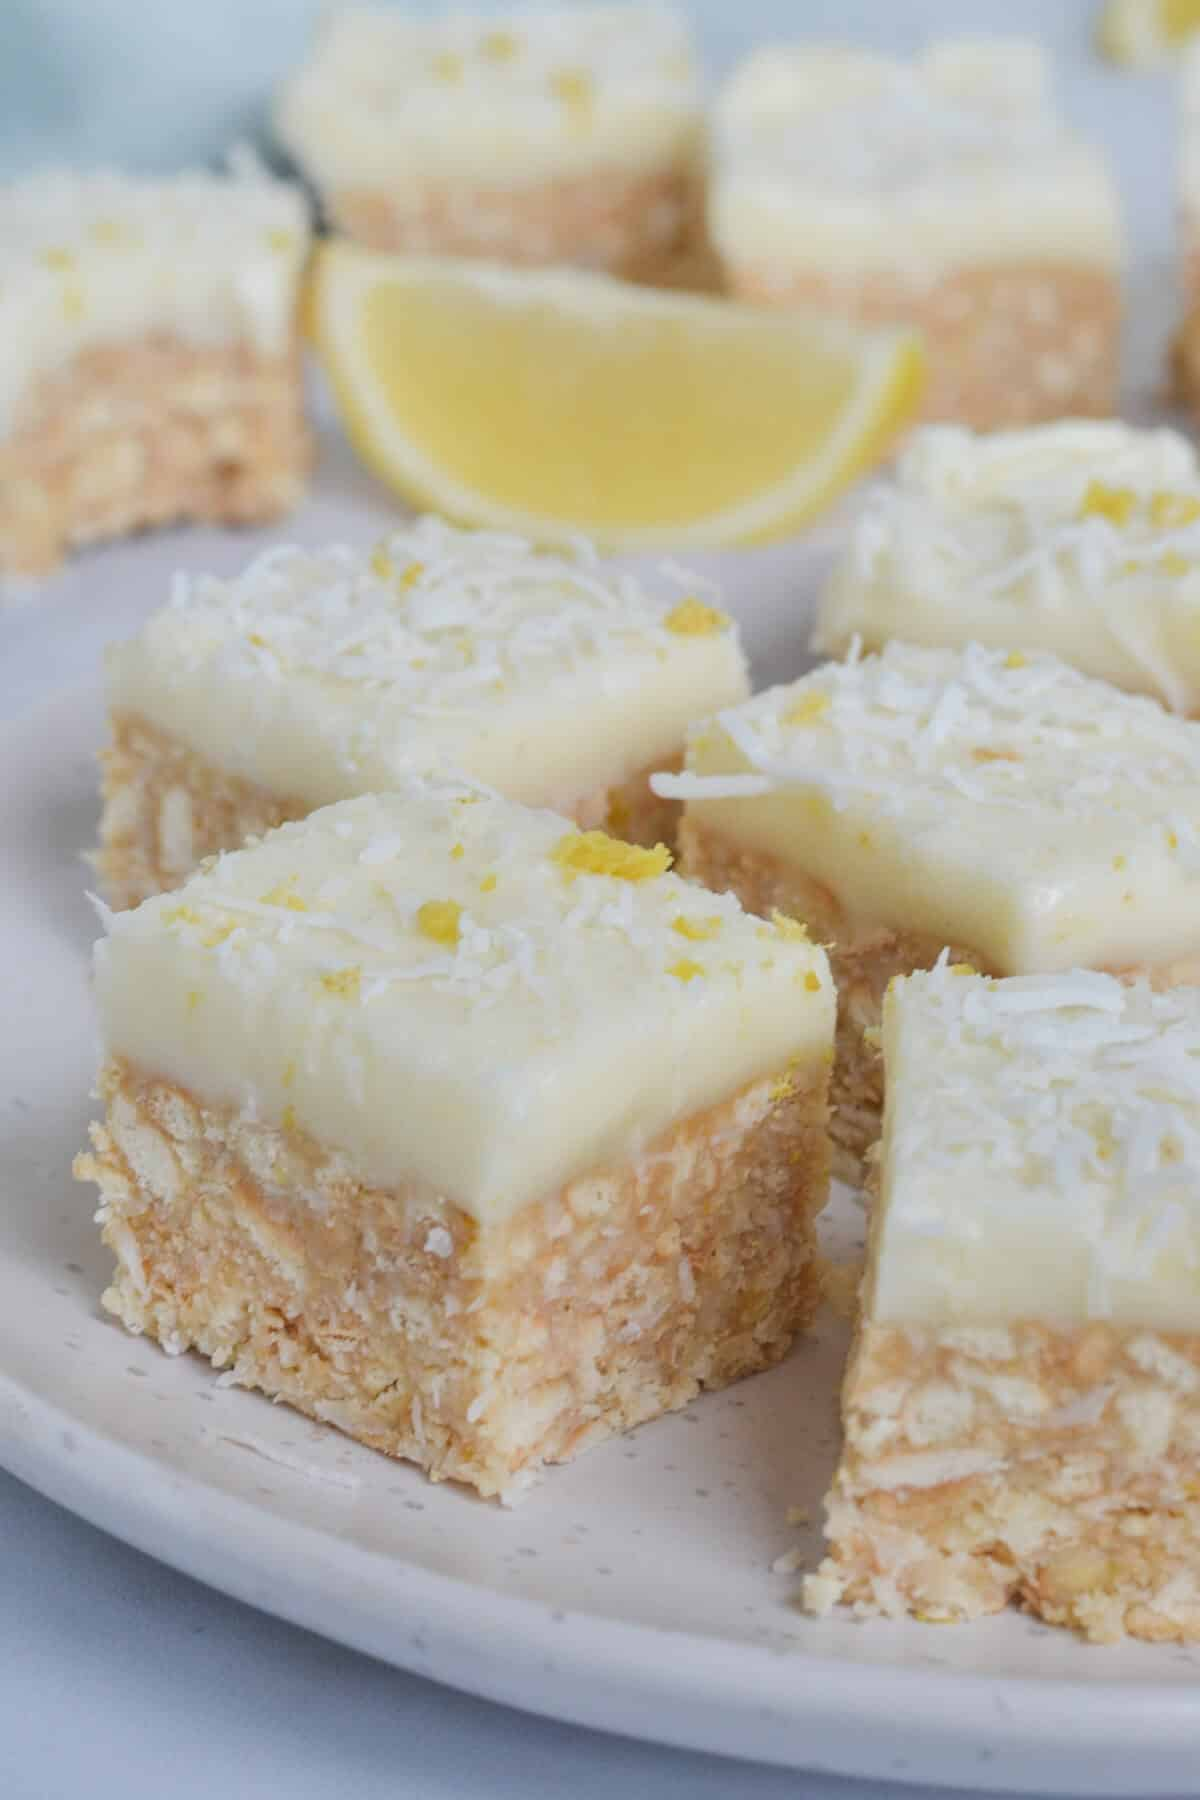 pieces of lemon and coconut slice on a white plate topped with shredded coconut